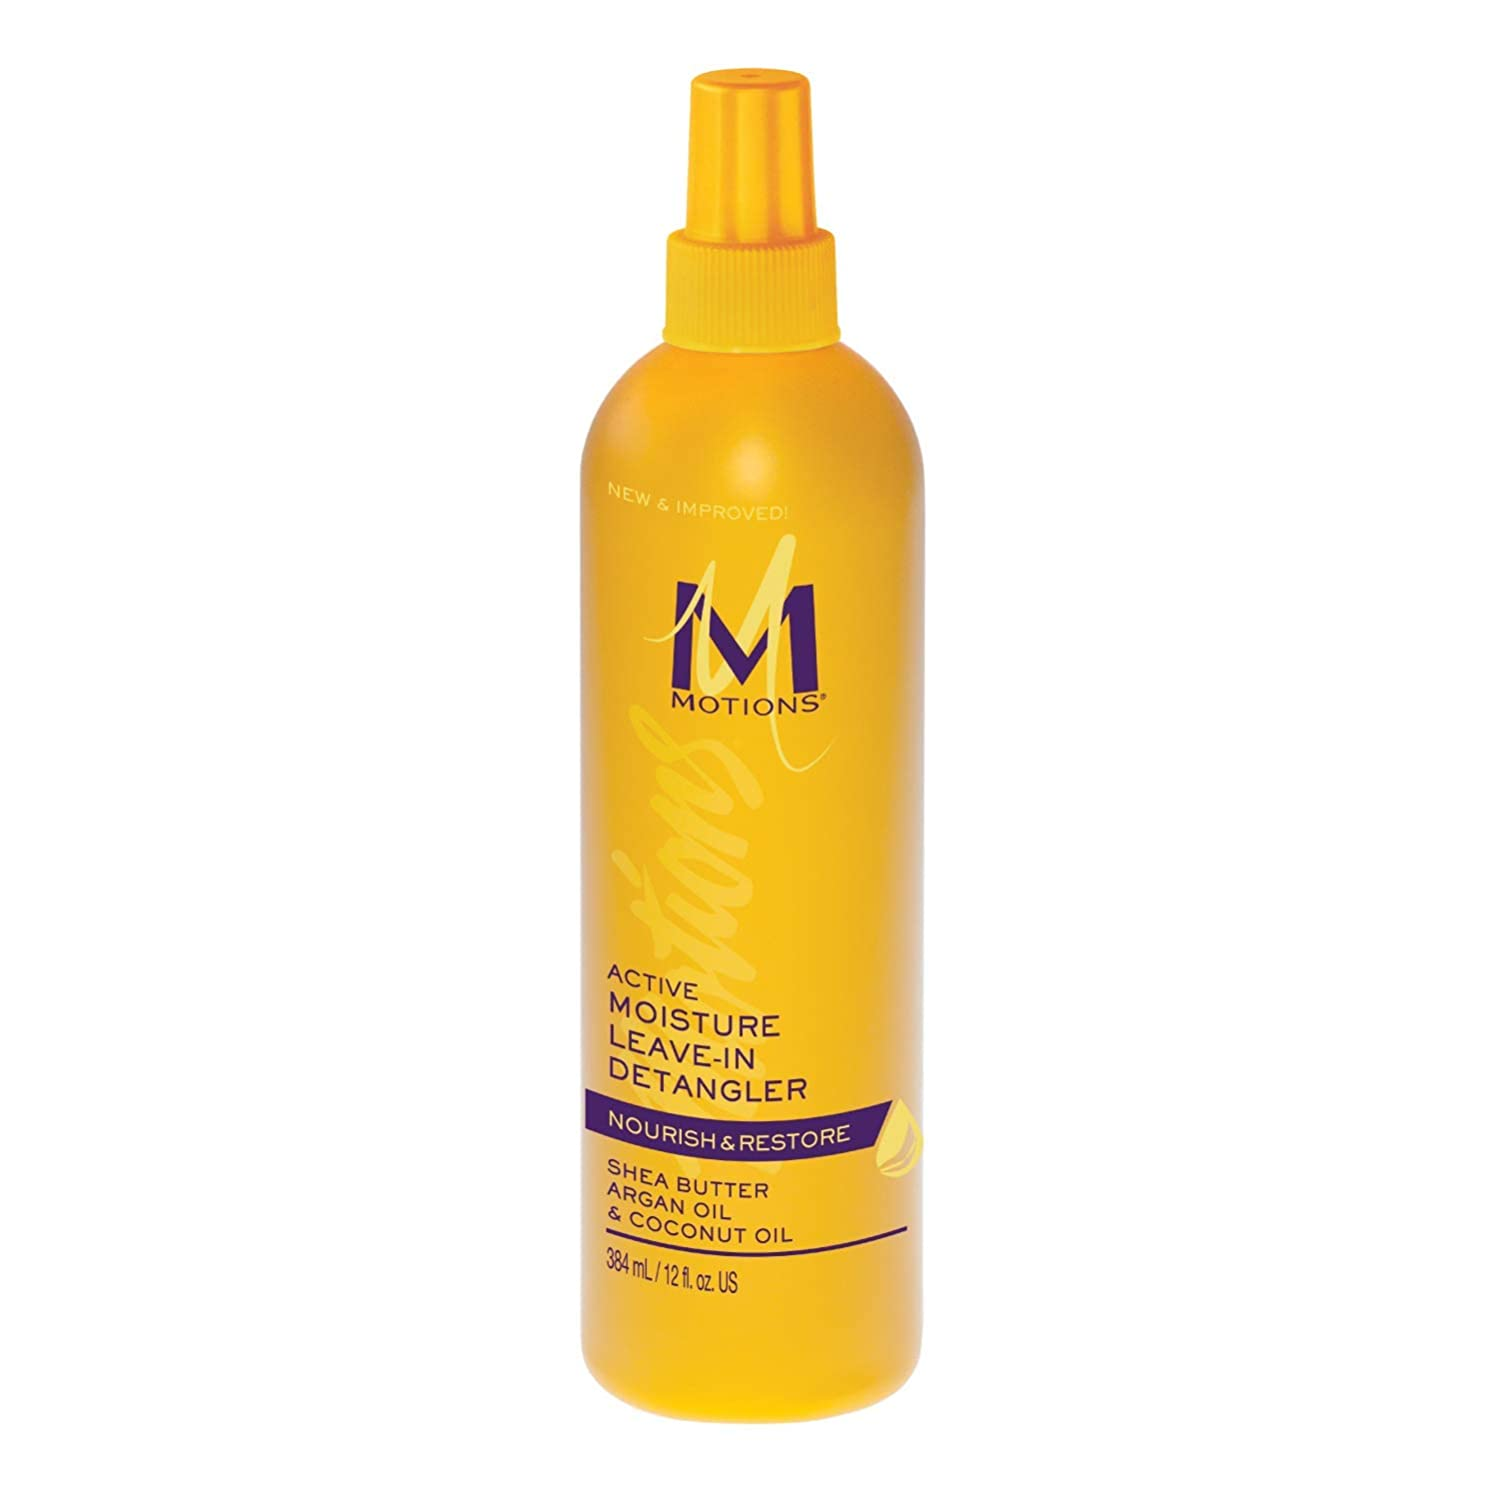 Motions Active Moisture Leave-In Detangler, 12 Ounce